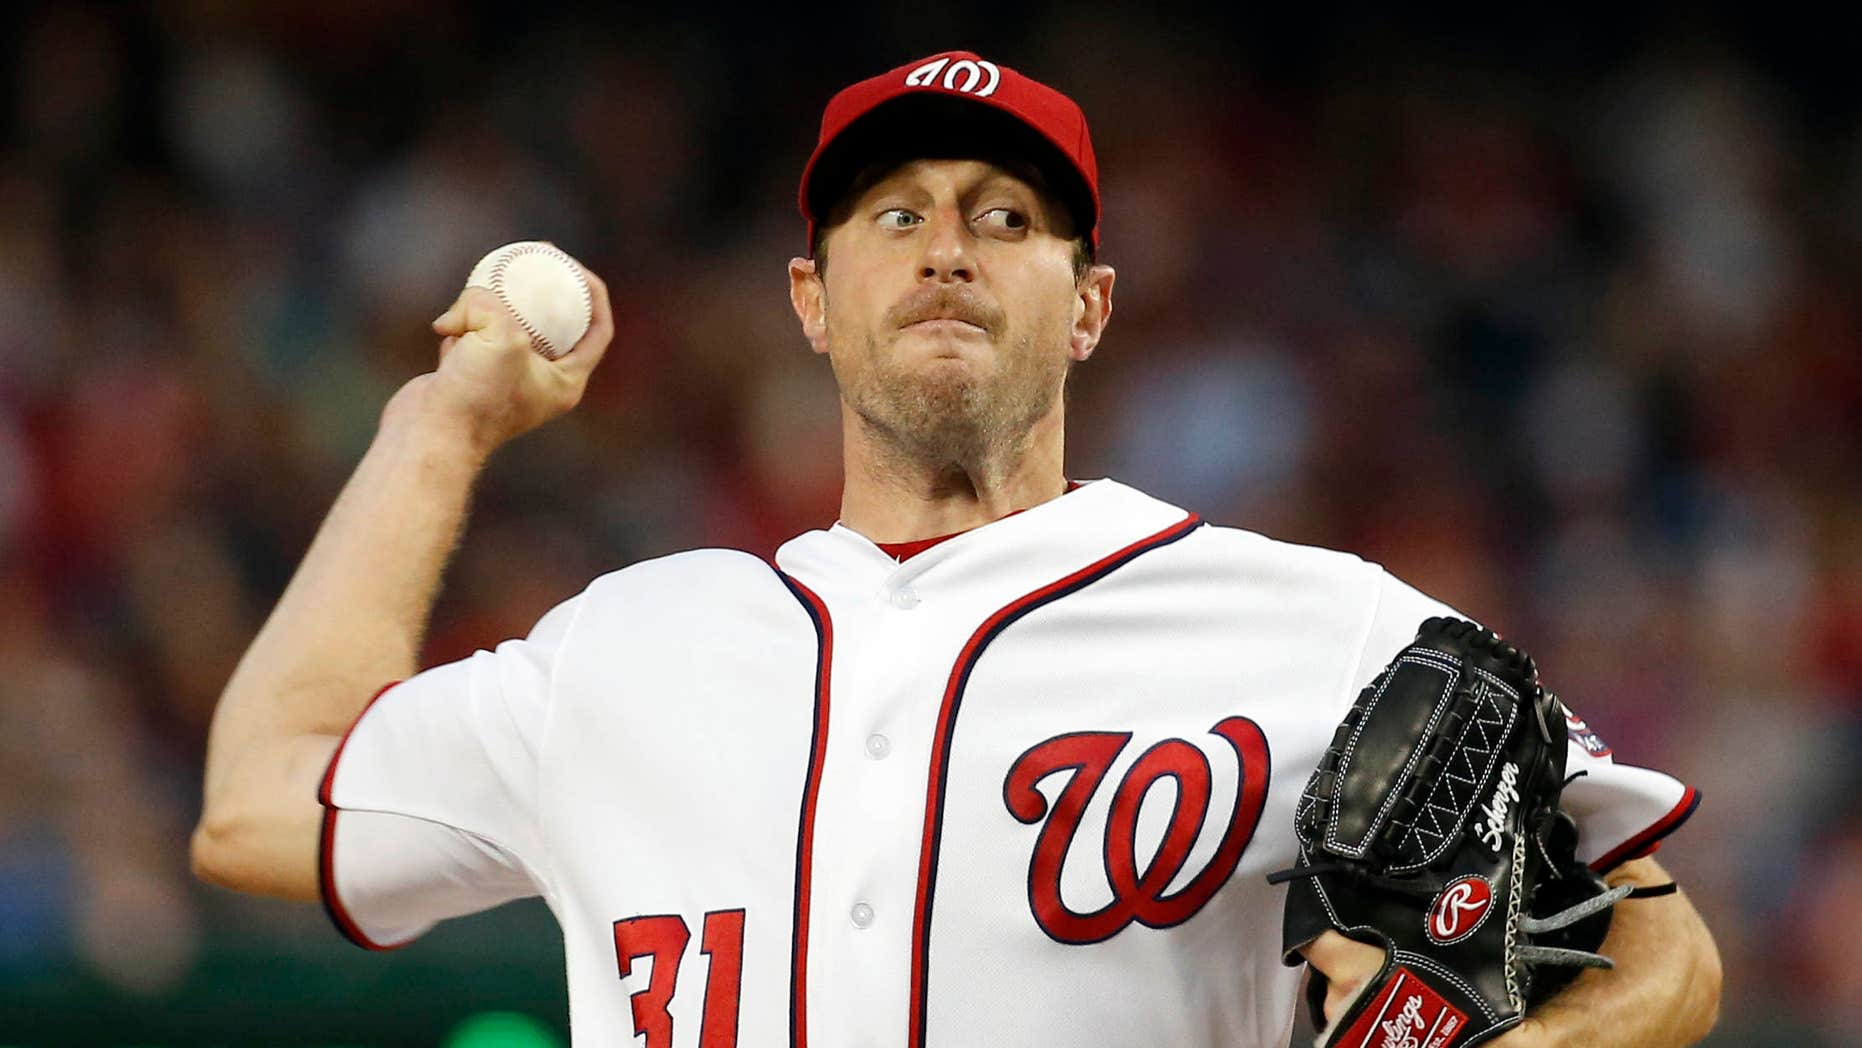 Washington Nationals starting pitcher Max Scherzer throws during the third inning of a baseball game against the Detroit Tigers at Nationals Park, Wednesday, May 11, 2016, in Washington.